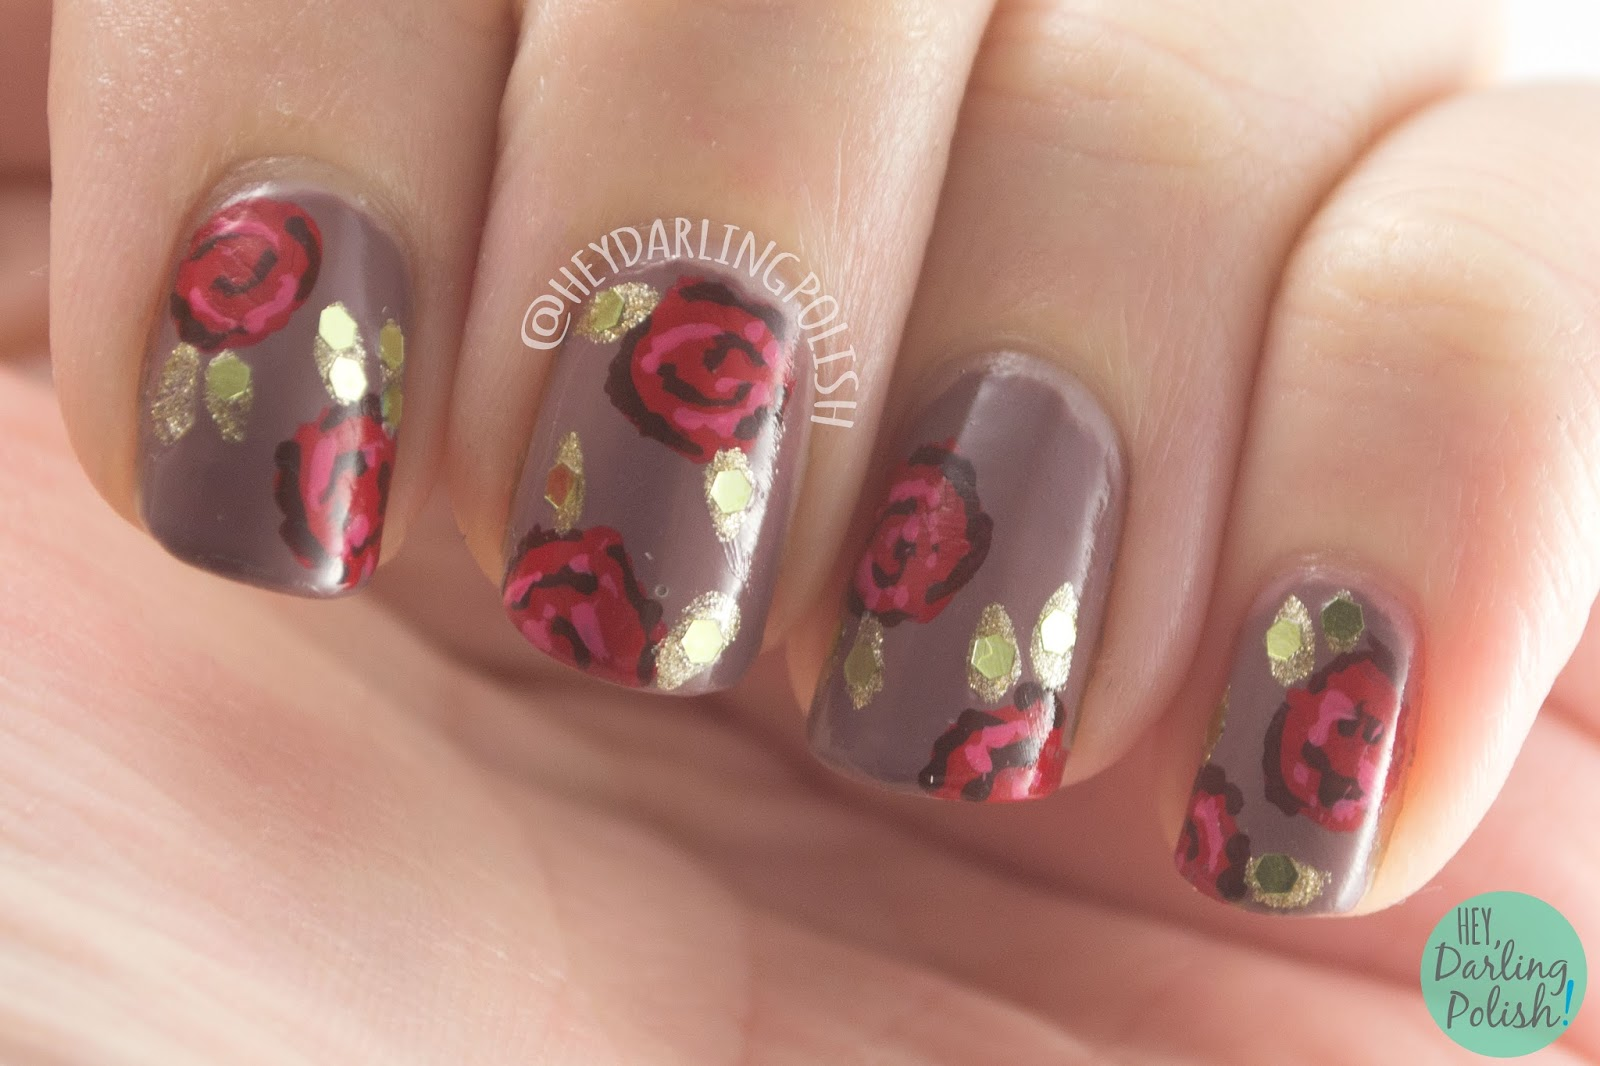 nails, nail art, nail polish, hey darling polish, roses, red, gold, fashion, dolce and gabbana, the nail challenge collaborative